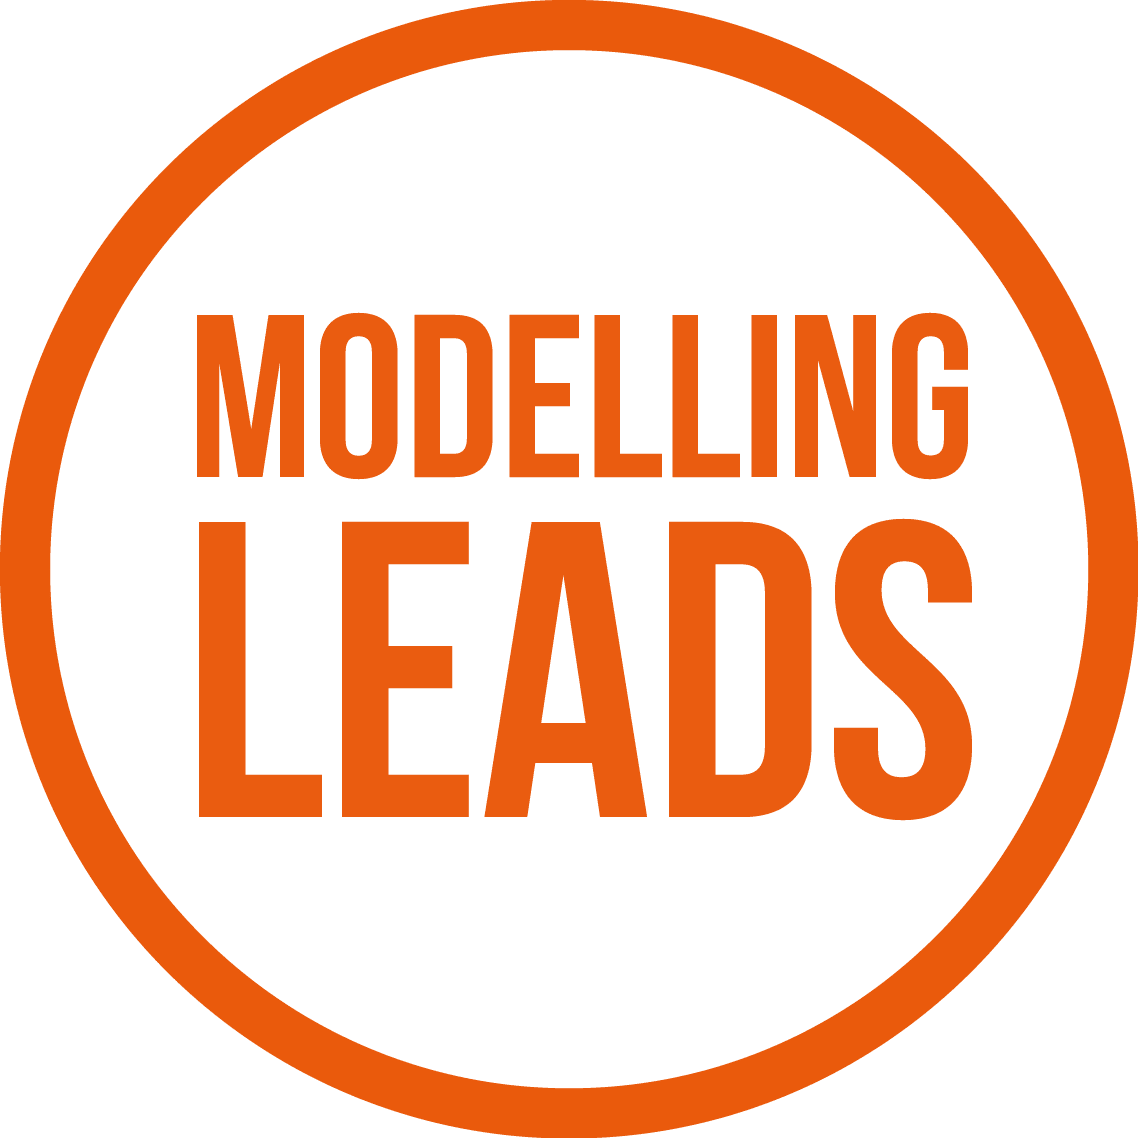 modelling_leads_AKinteractive_weathering